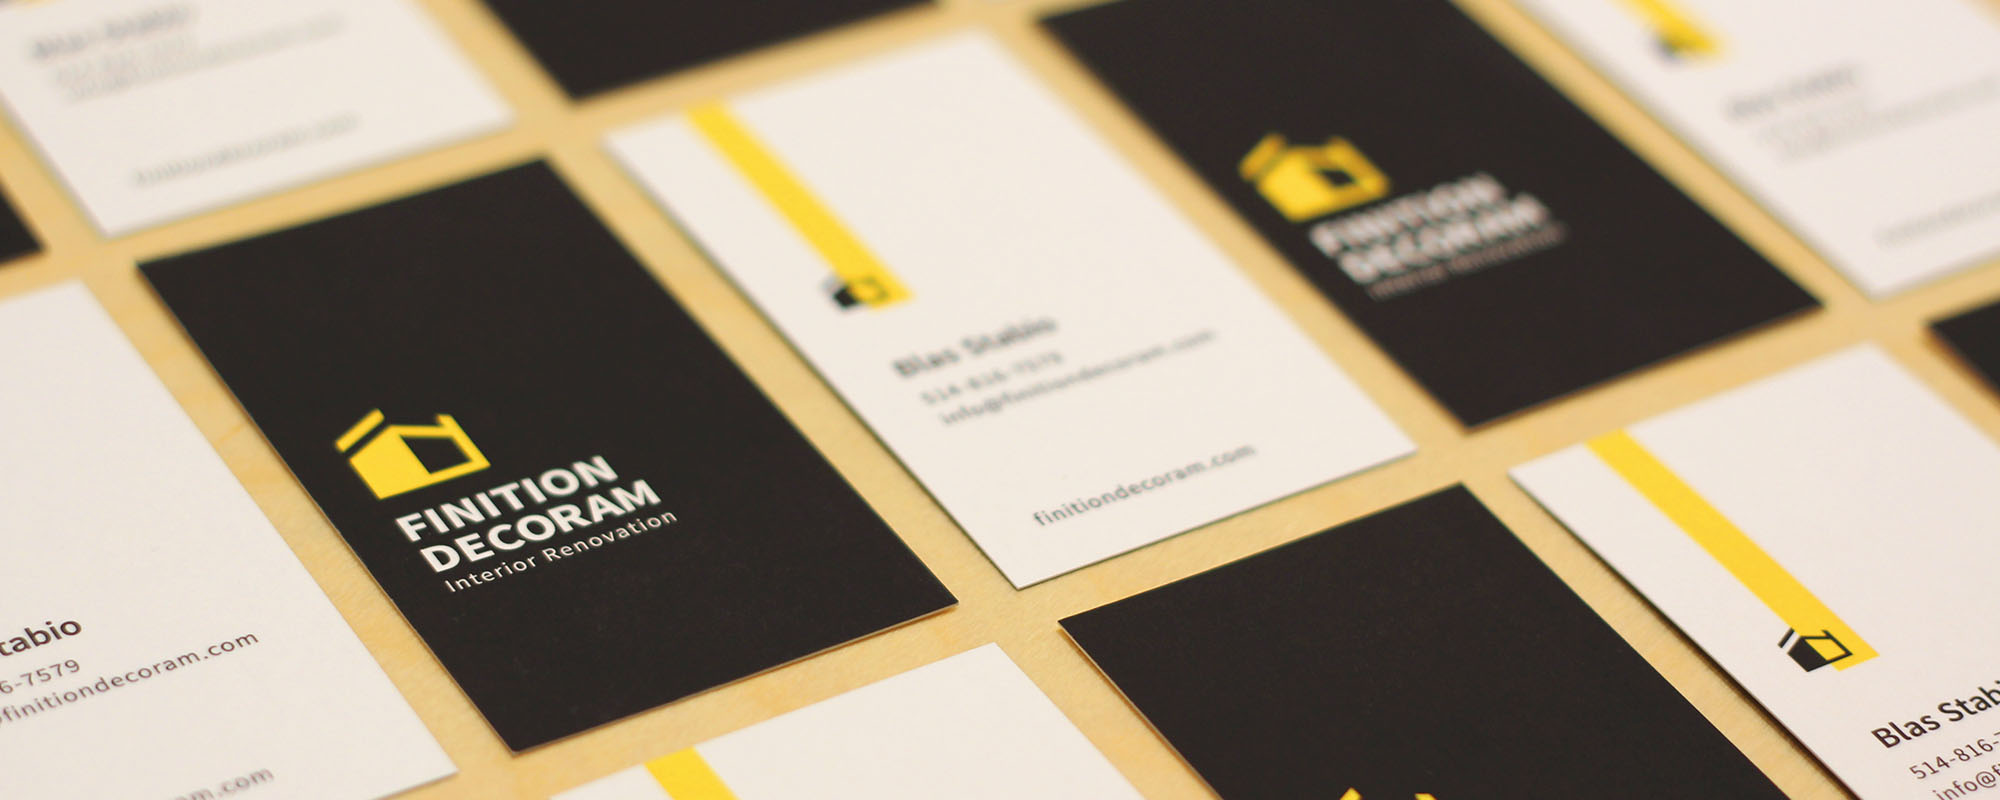 Business cards renovation choice image card design and card template finition decoram rebrand 2017 montreal design construction company montreal business card design and print and full magicingreecefo Gallery